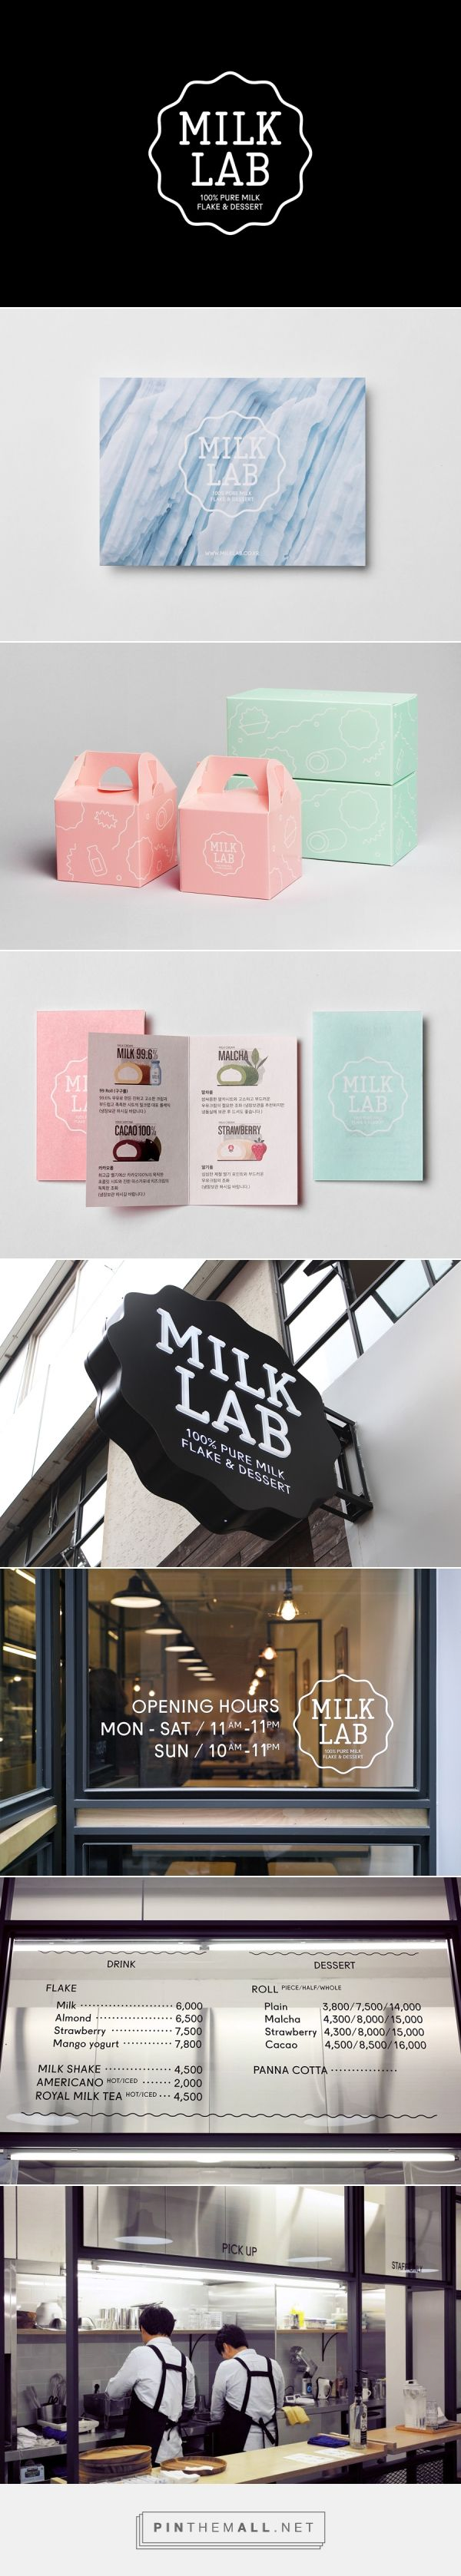 New Logo and Brand Identity for Milk Lab by Studio fnt - BP&O... - a grouped images picture - Pin Them All